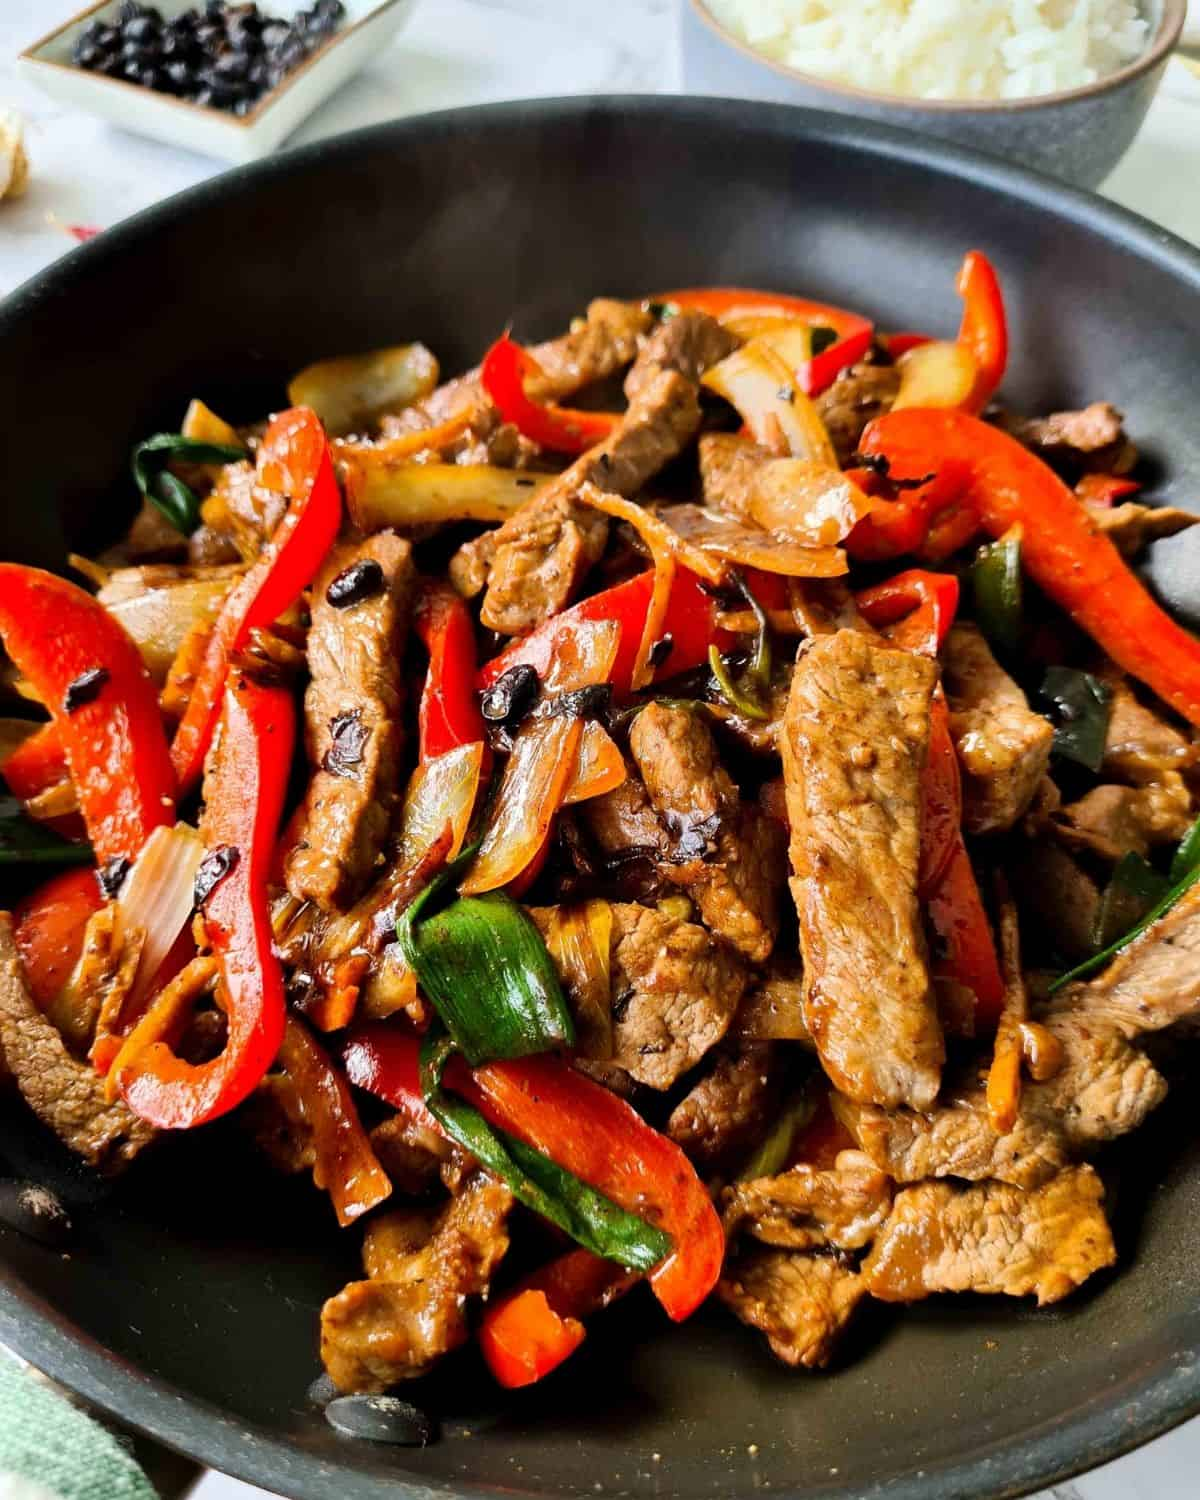 Close up of freshly cooked beef stir fry with black bean sauce in a black pan